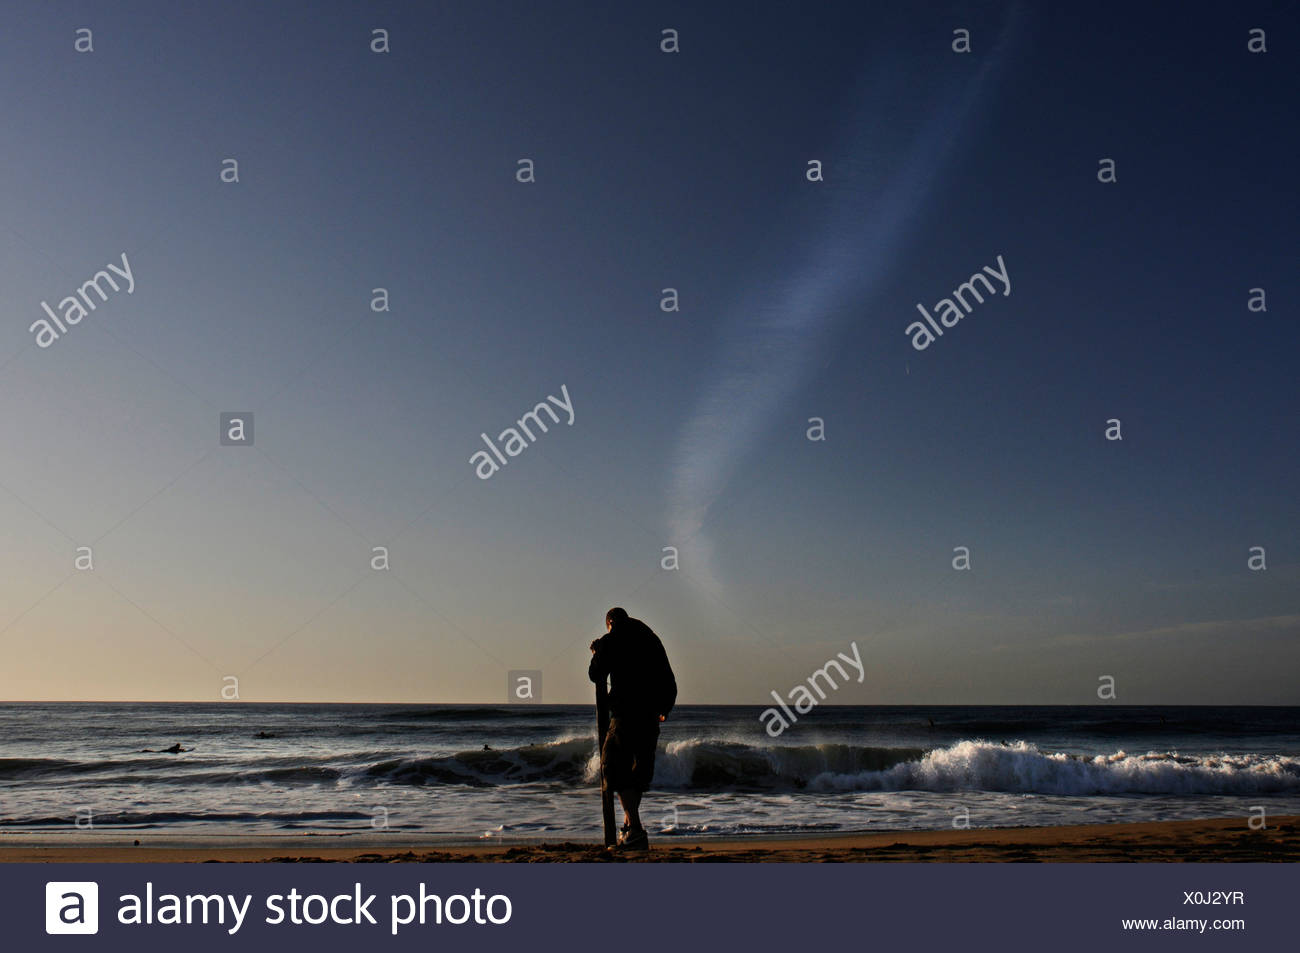 A man standing next to the sea, leaning on a wooden post - Stock Image